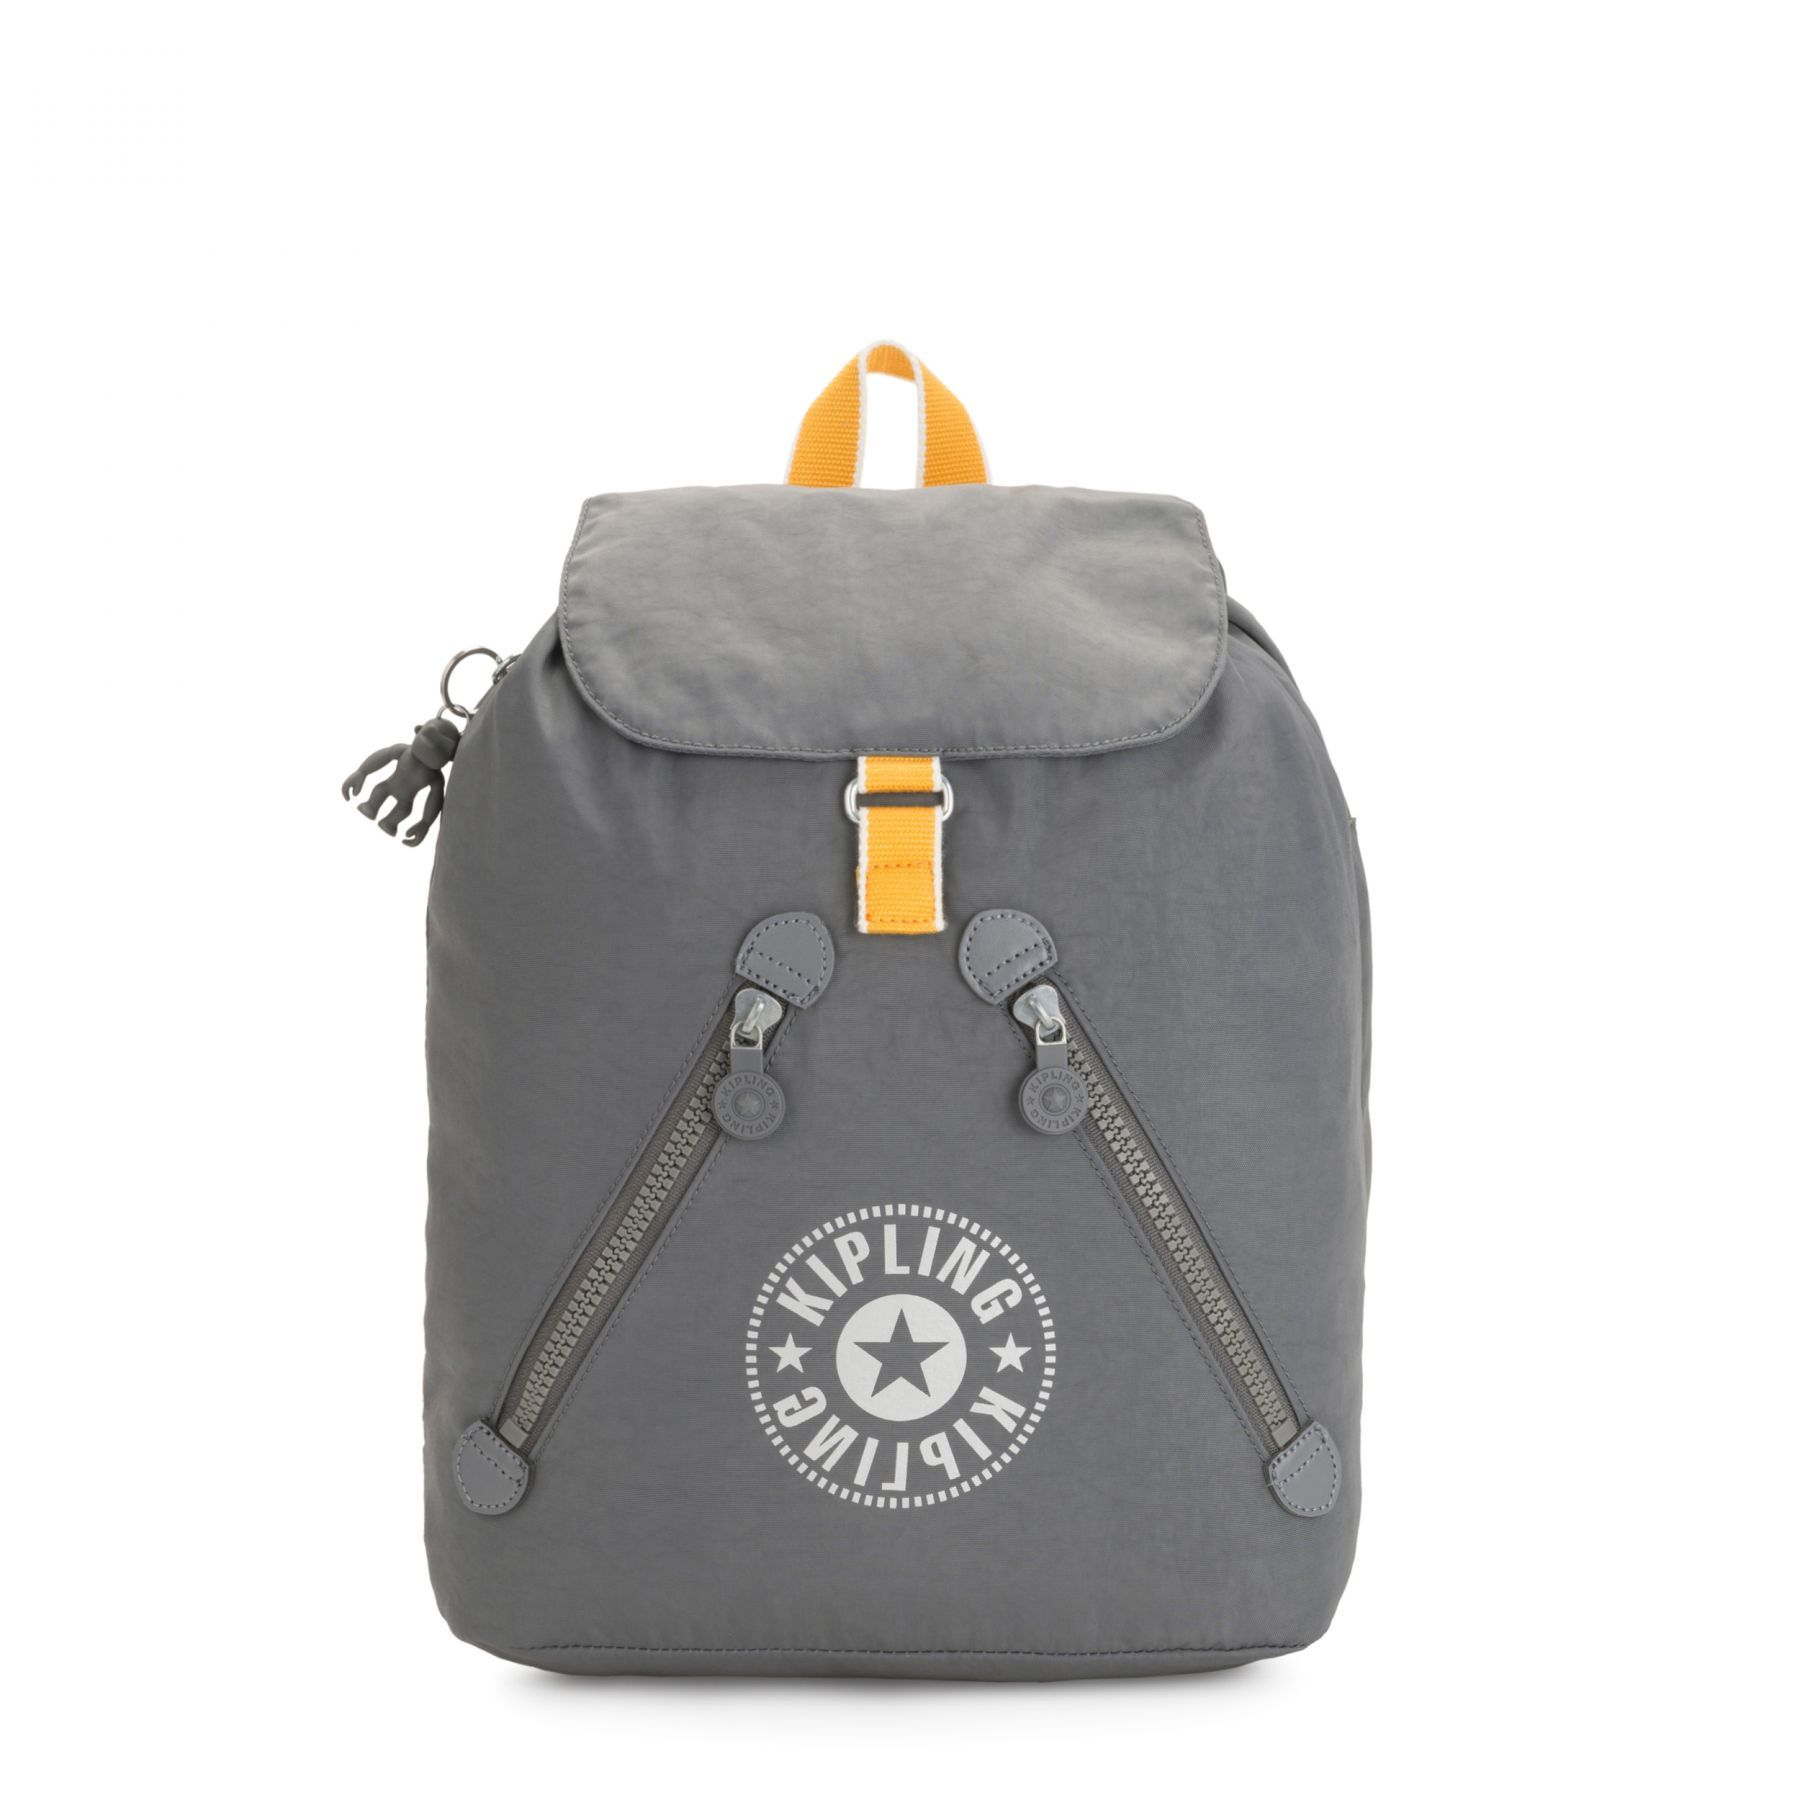 Mochila Fundamental Kipling Dark Carbon Y